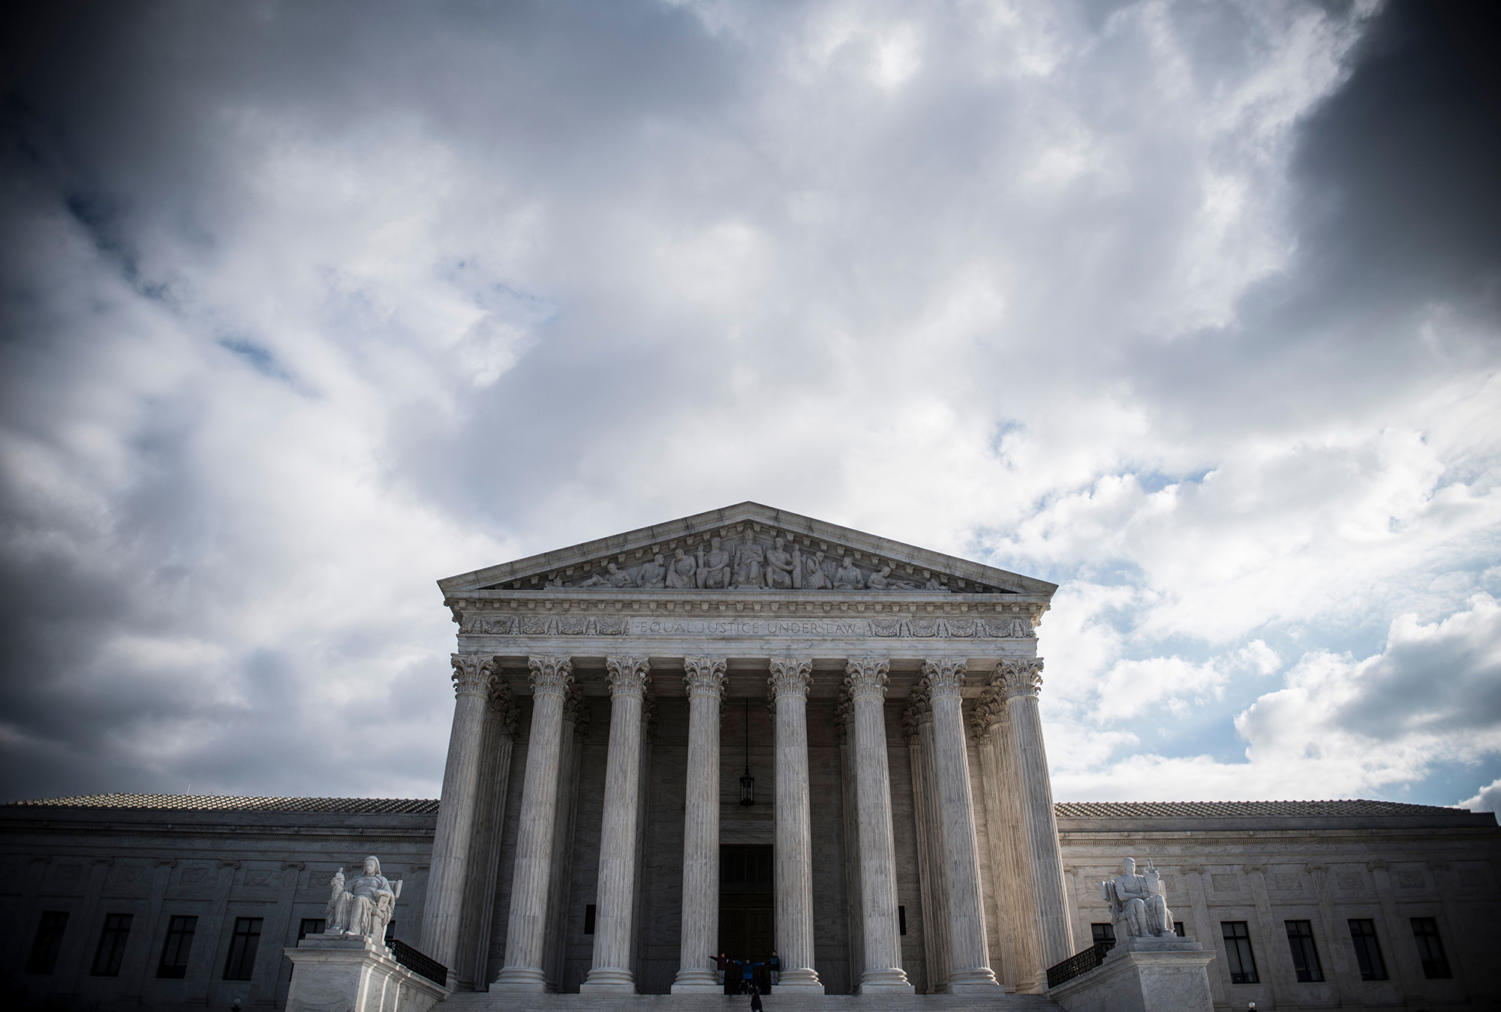 The Supreme Court has ruled that the Defense Department can enforce President Donald Trump's policy banning transgender people from serving in the military.